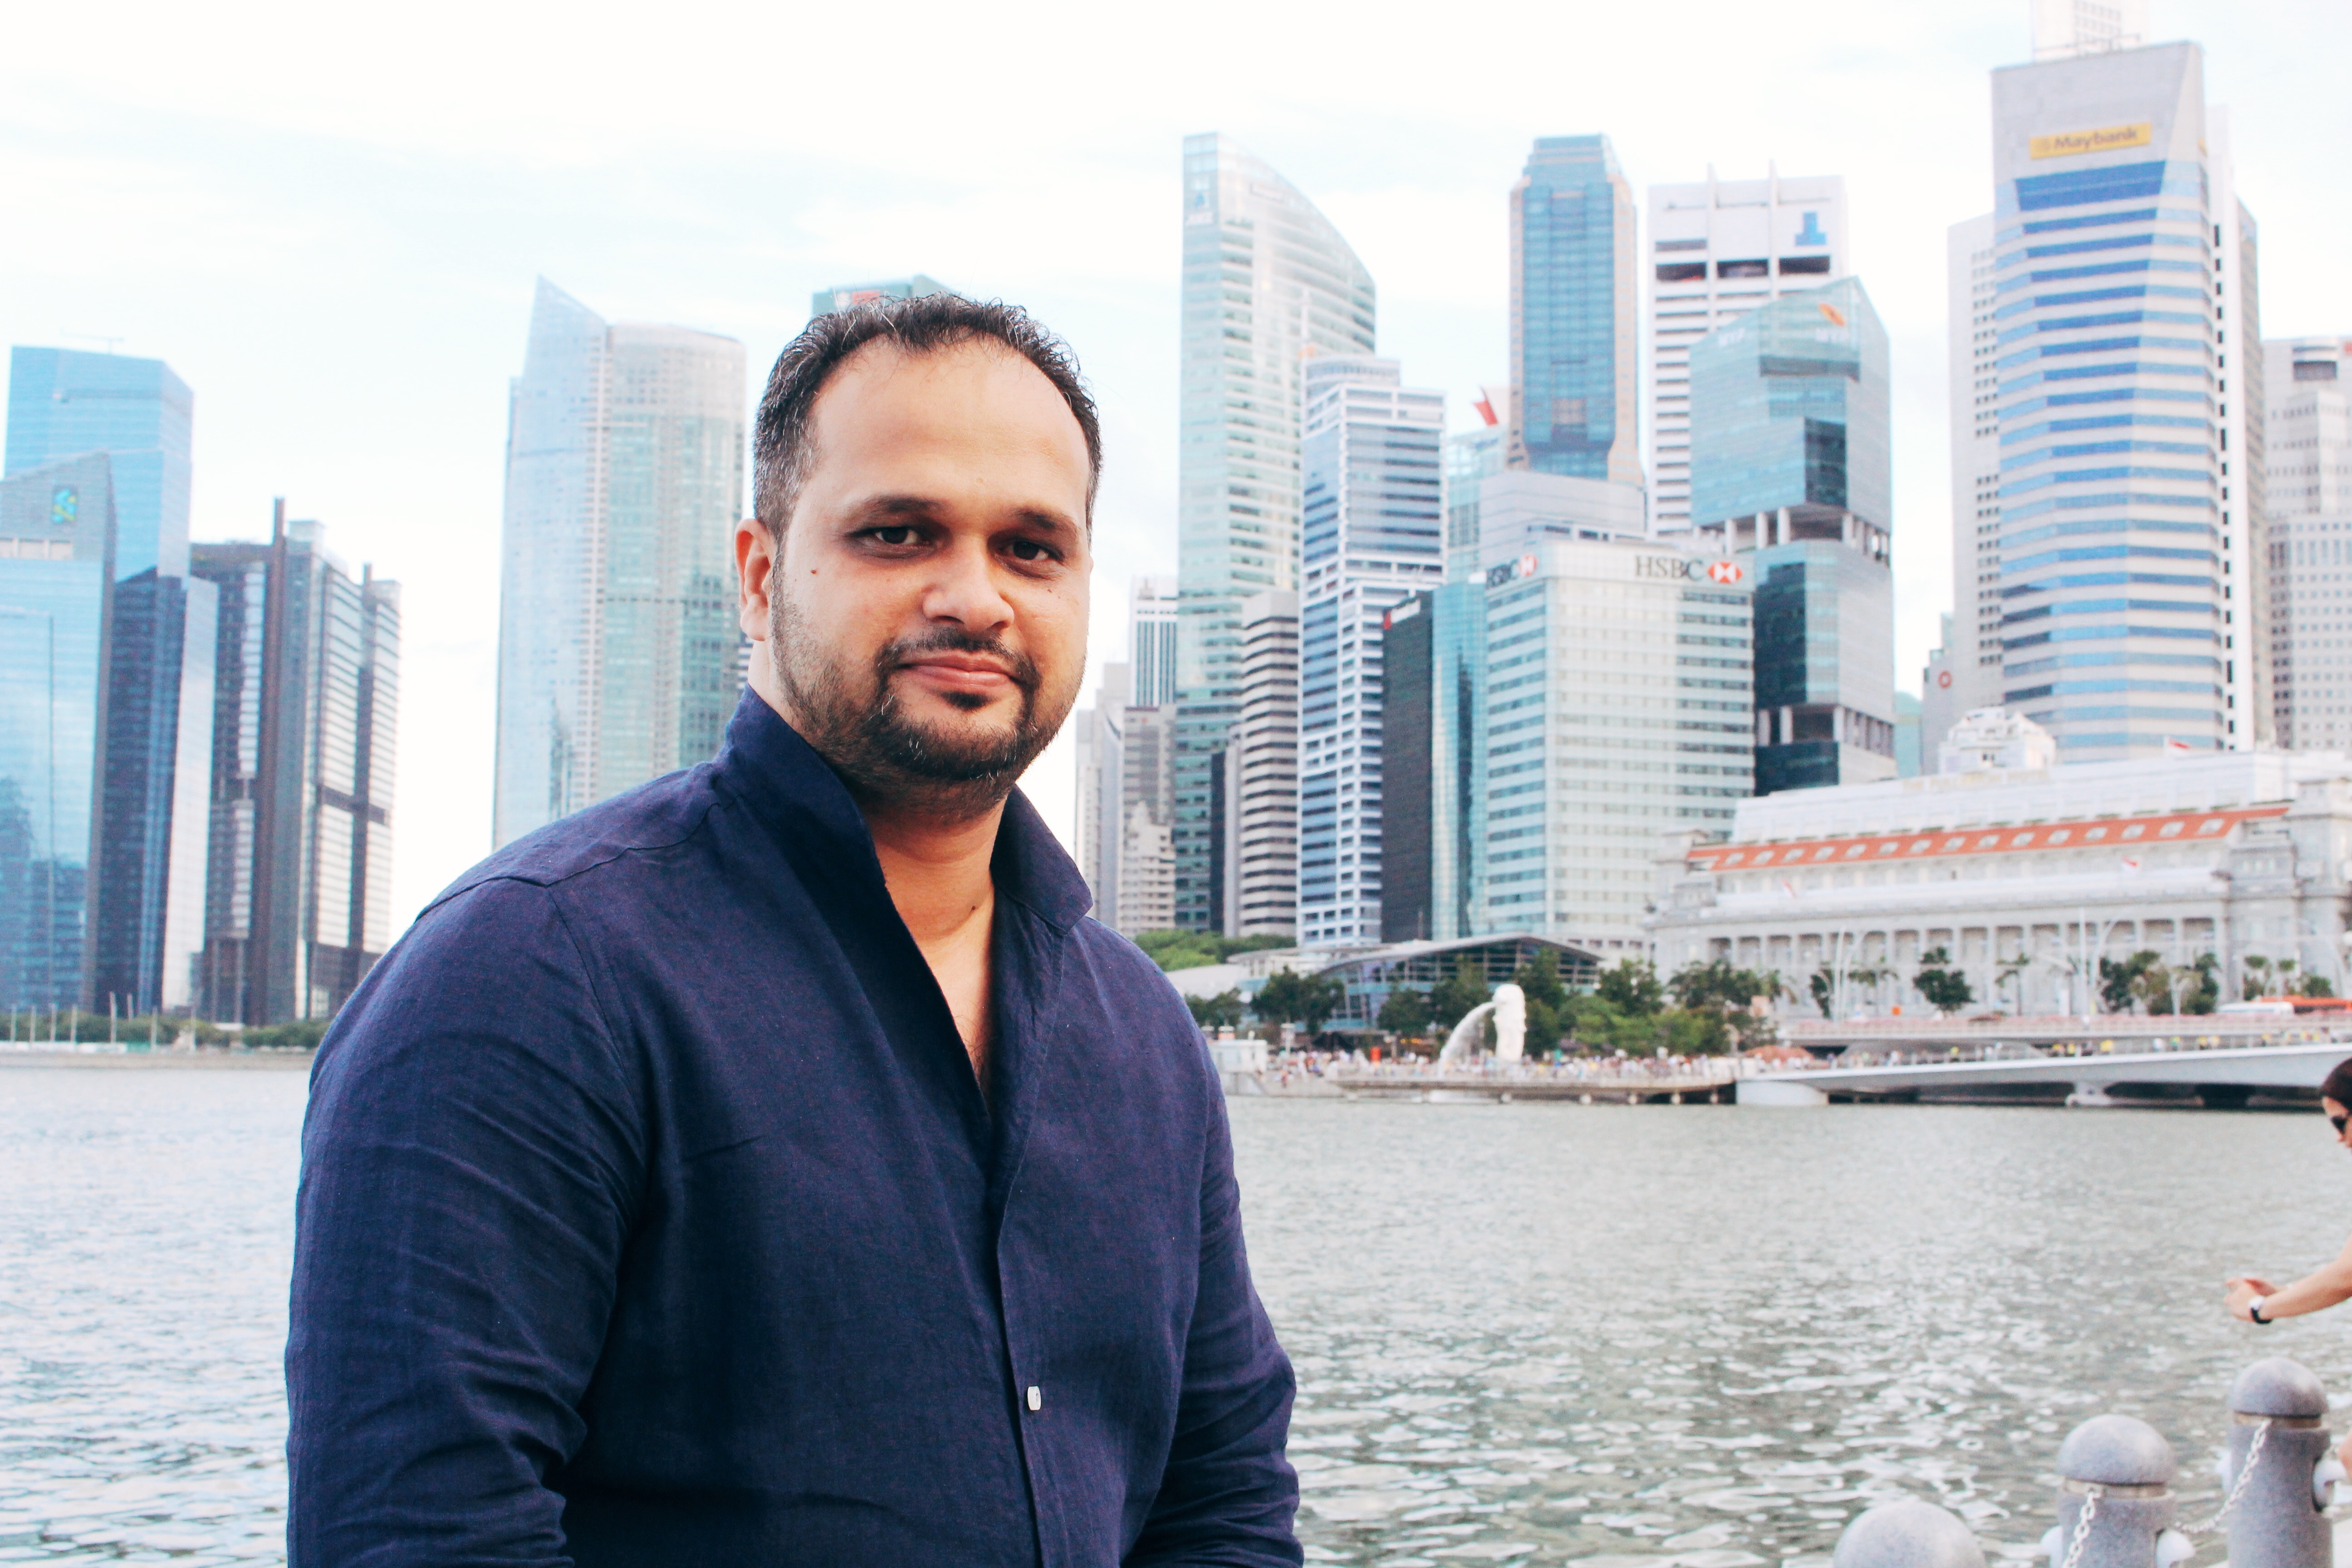 Abhayanand and Vistas Media have served as the bridge between content creators and financiers across India, Singapore and South Asia.